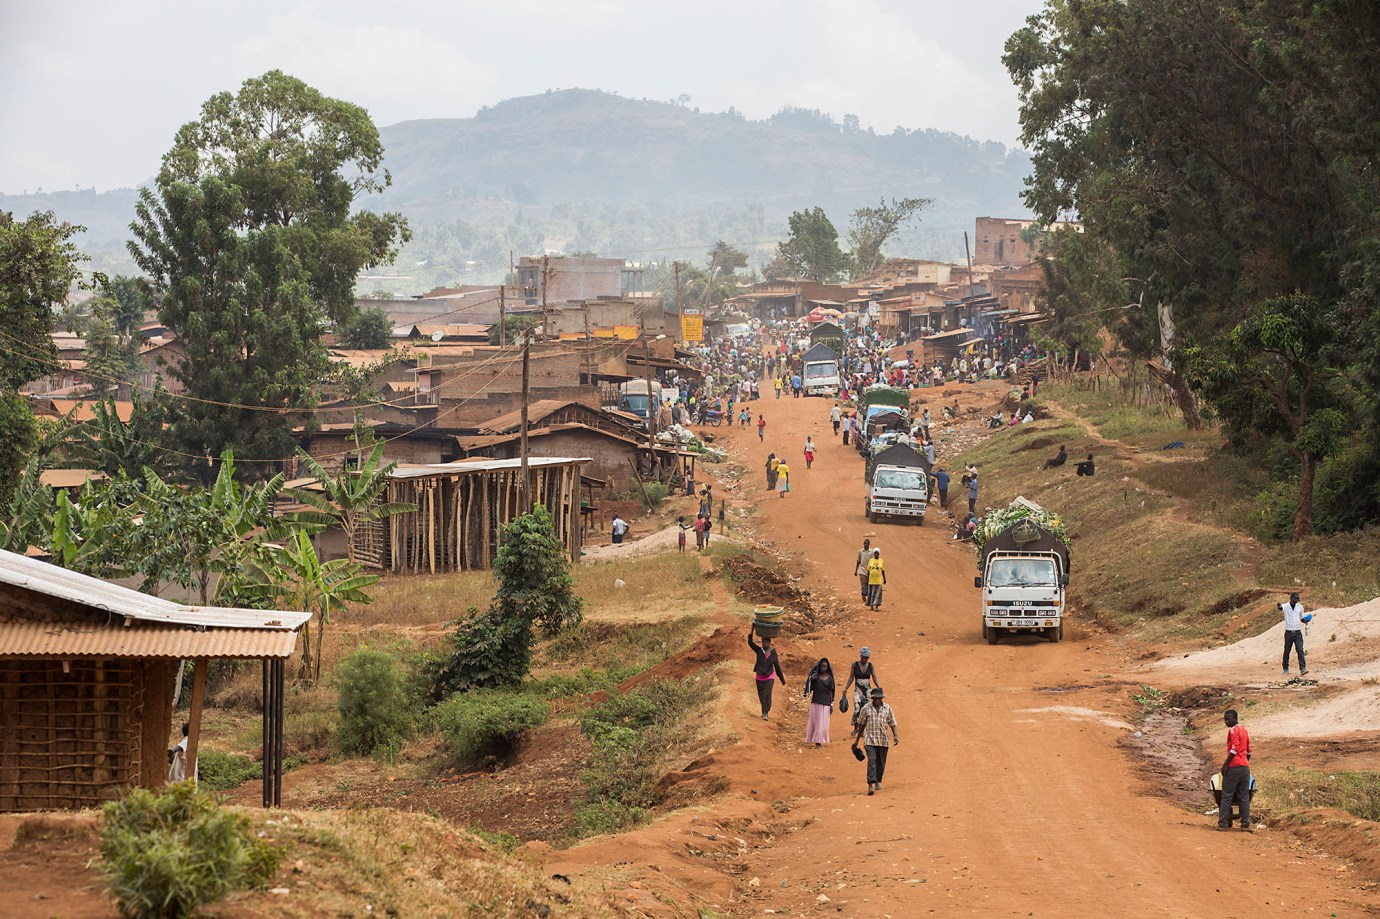 Unpaved roads make for difficult travel on Uganda's Mount Elgon.